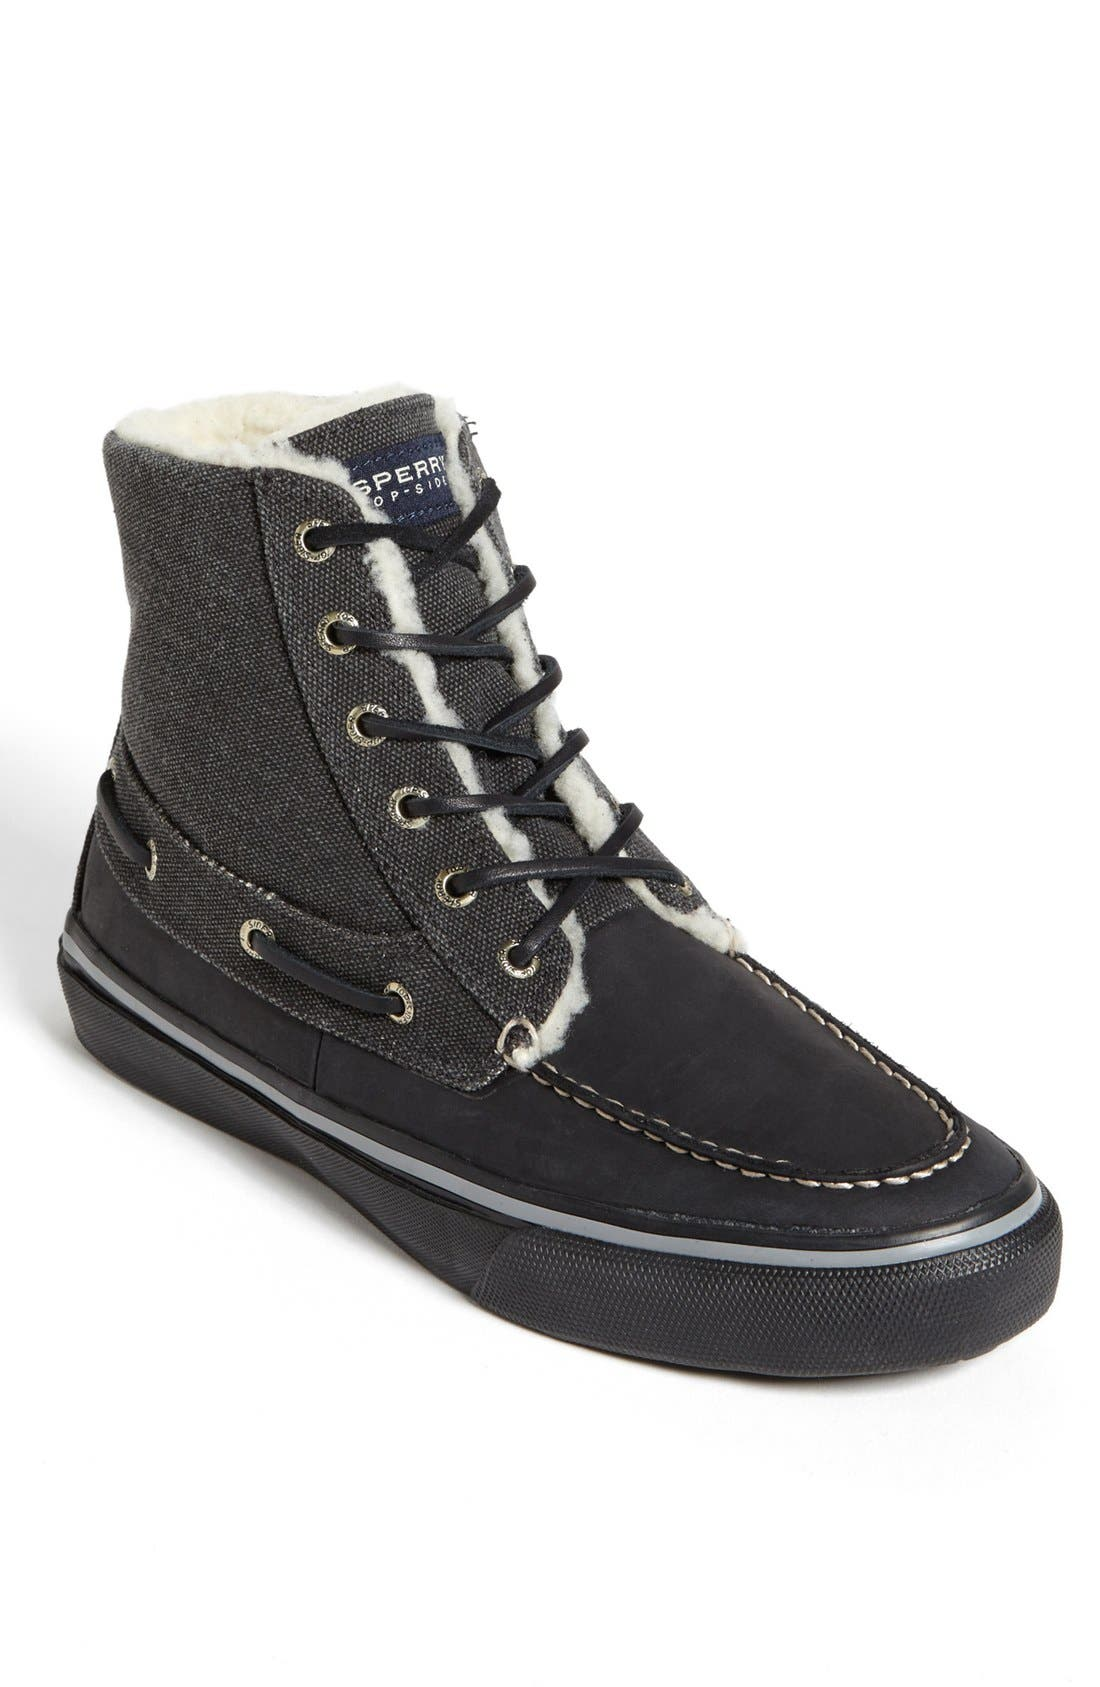 Alternate Image 1 Selected - Sperry Top-Sider® 'Bahama' Boot